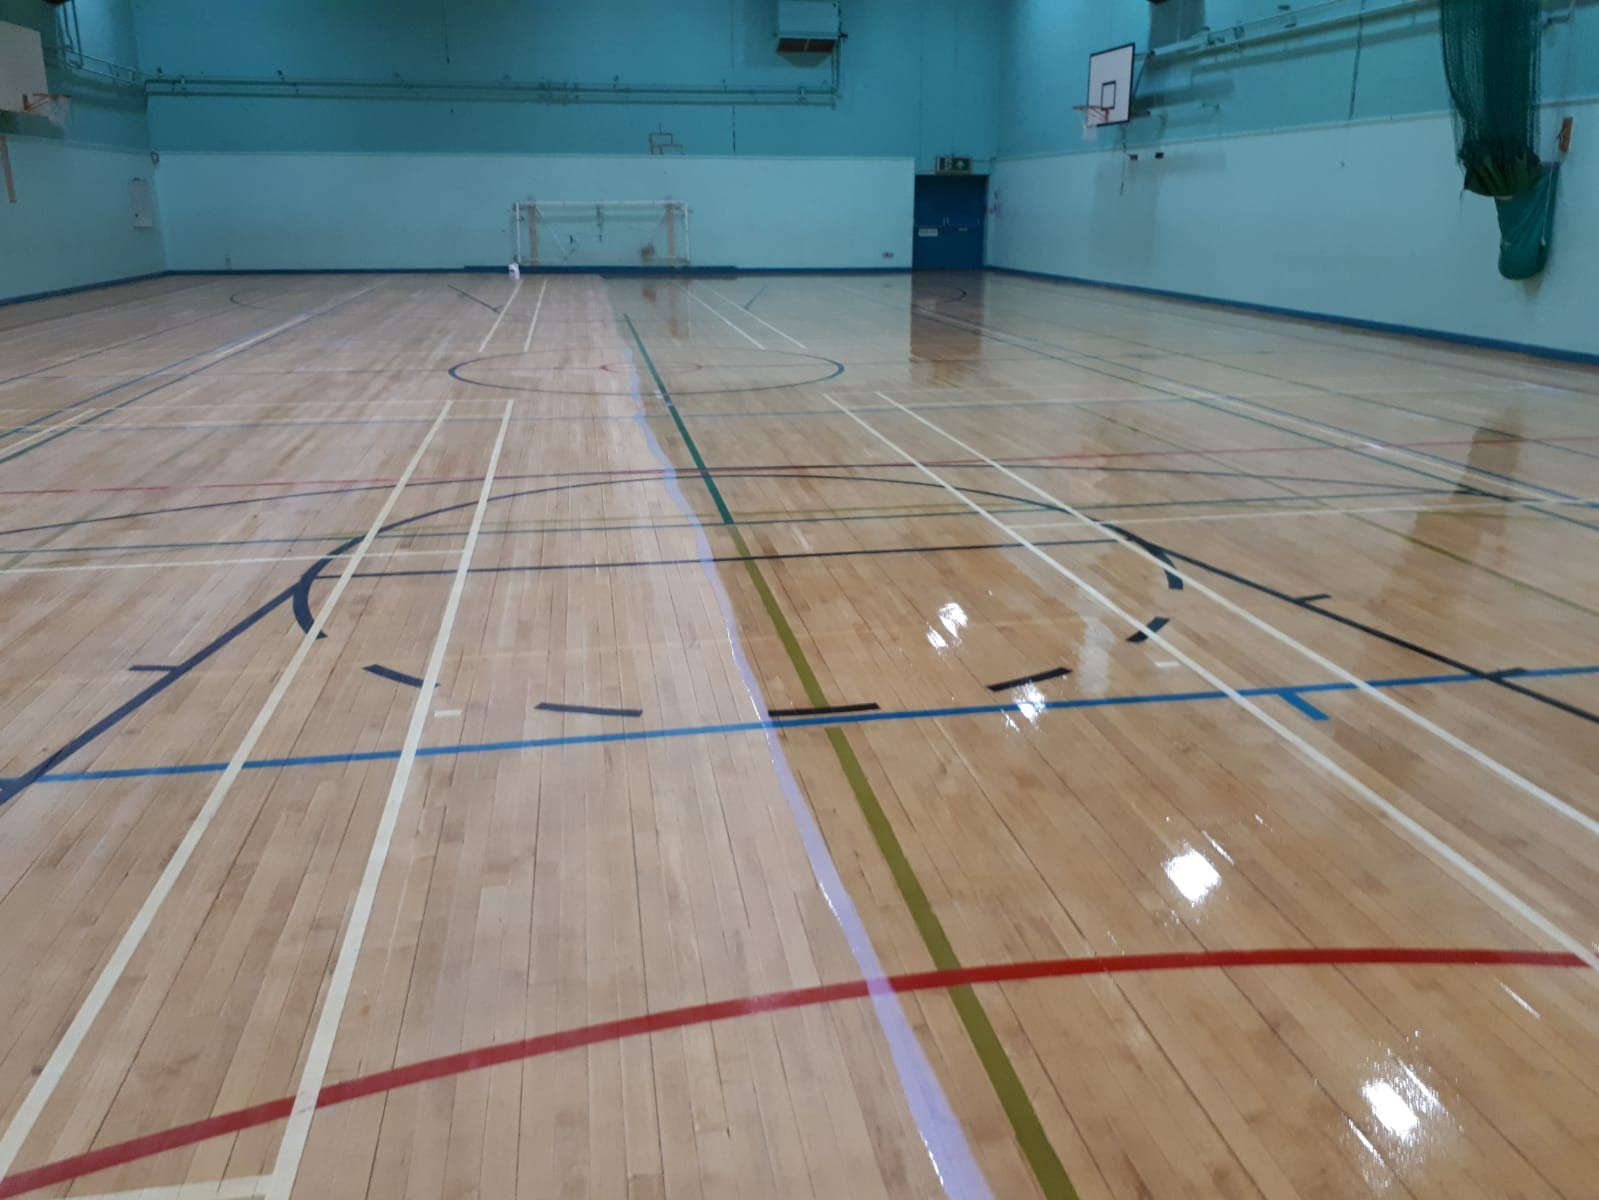 Castell Alun High School in Wrexham. The team replaced defective sections of the timber floor, scrubbed and applied a clear polyurethane seal and finally re-marked the netball courts.